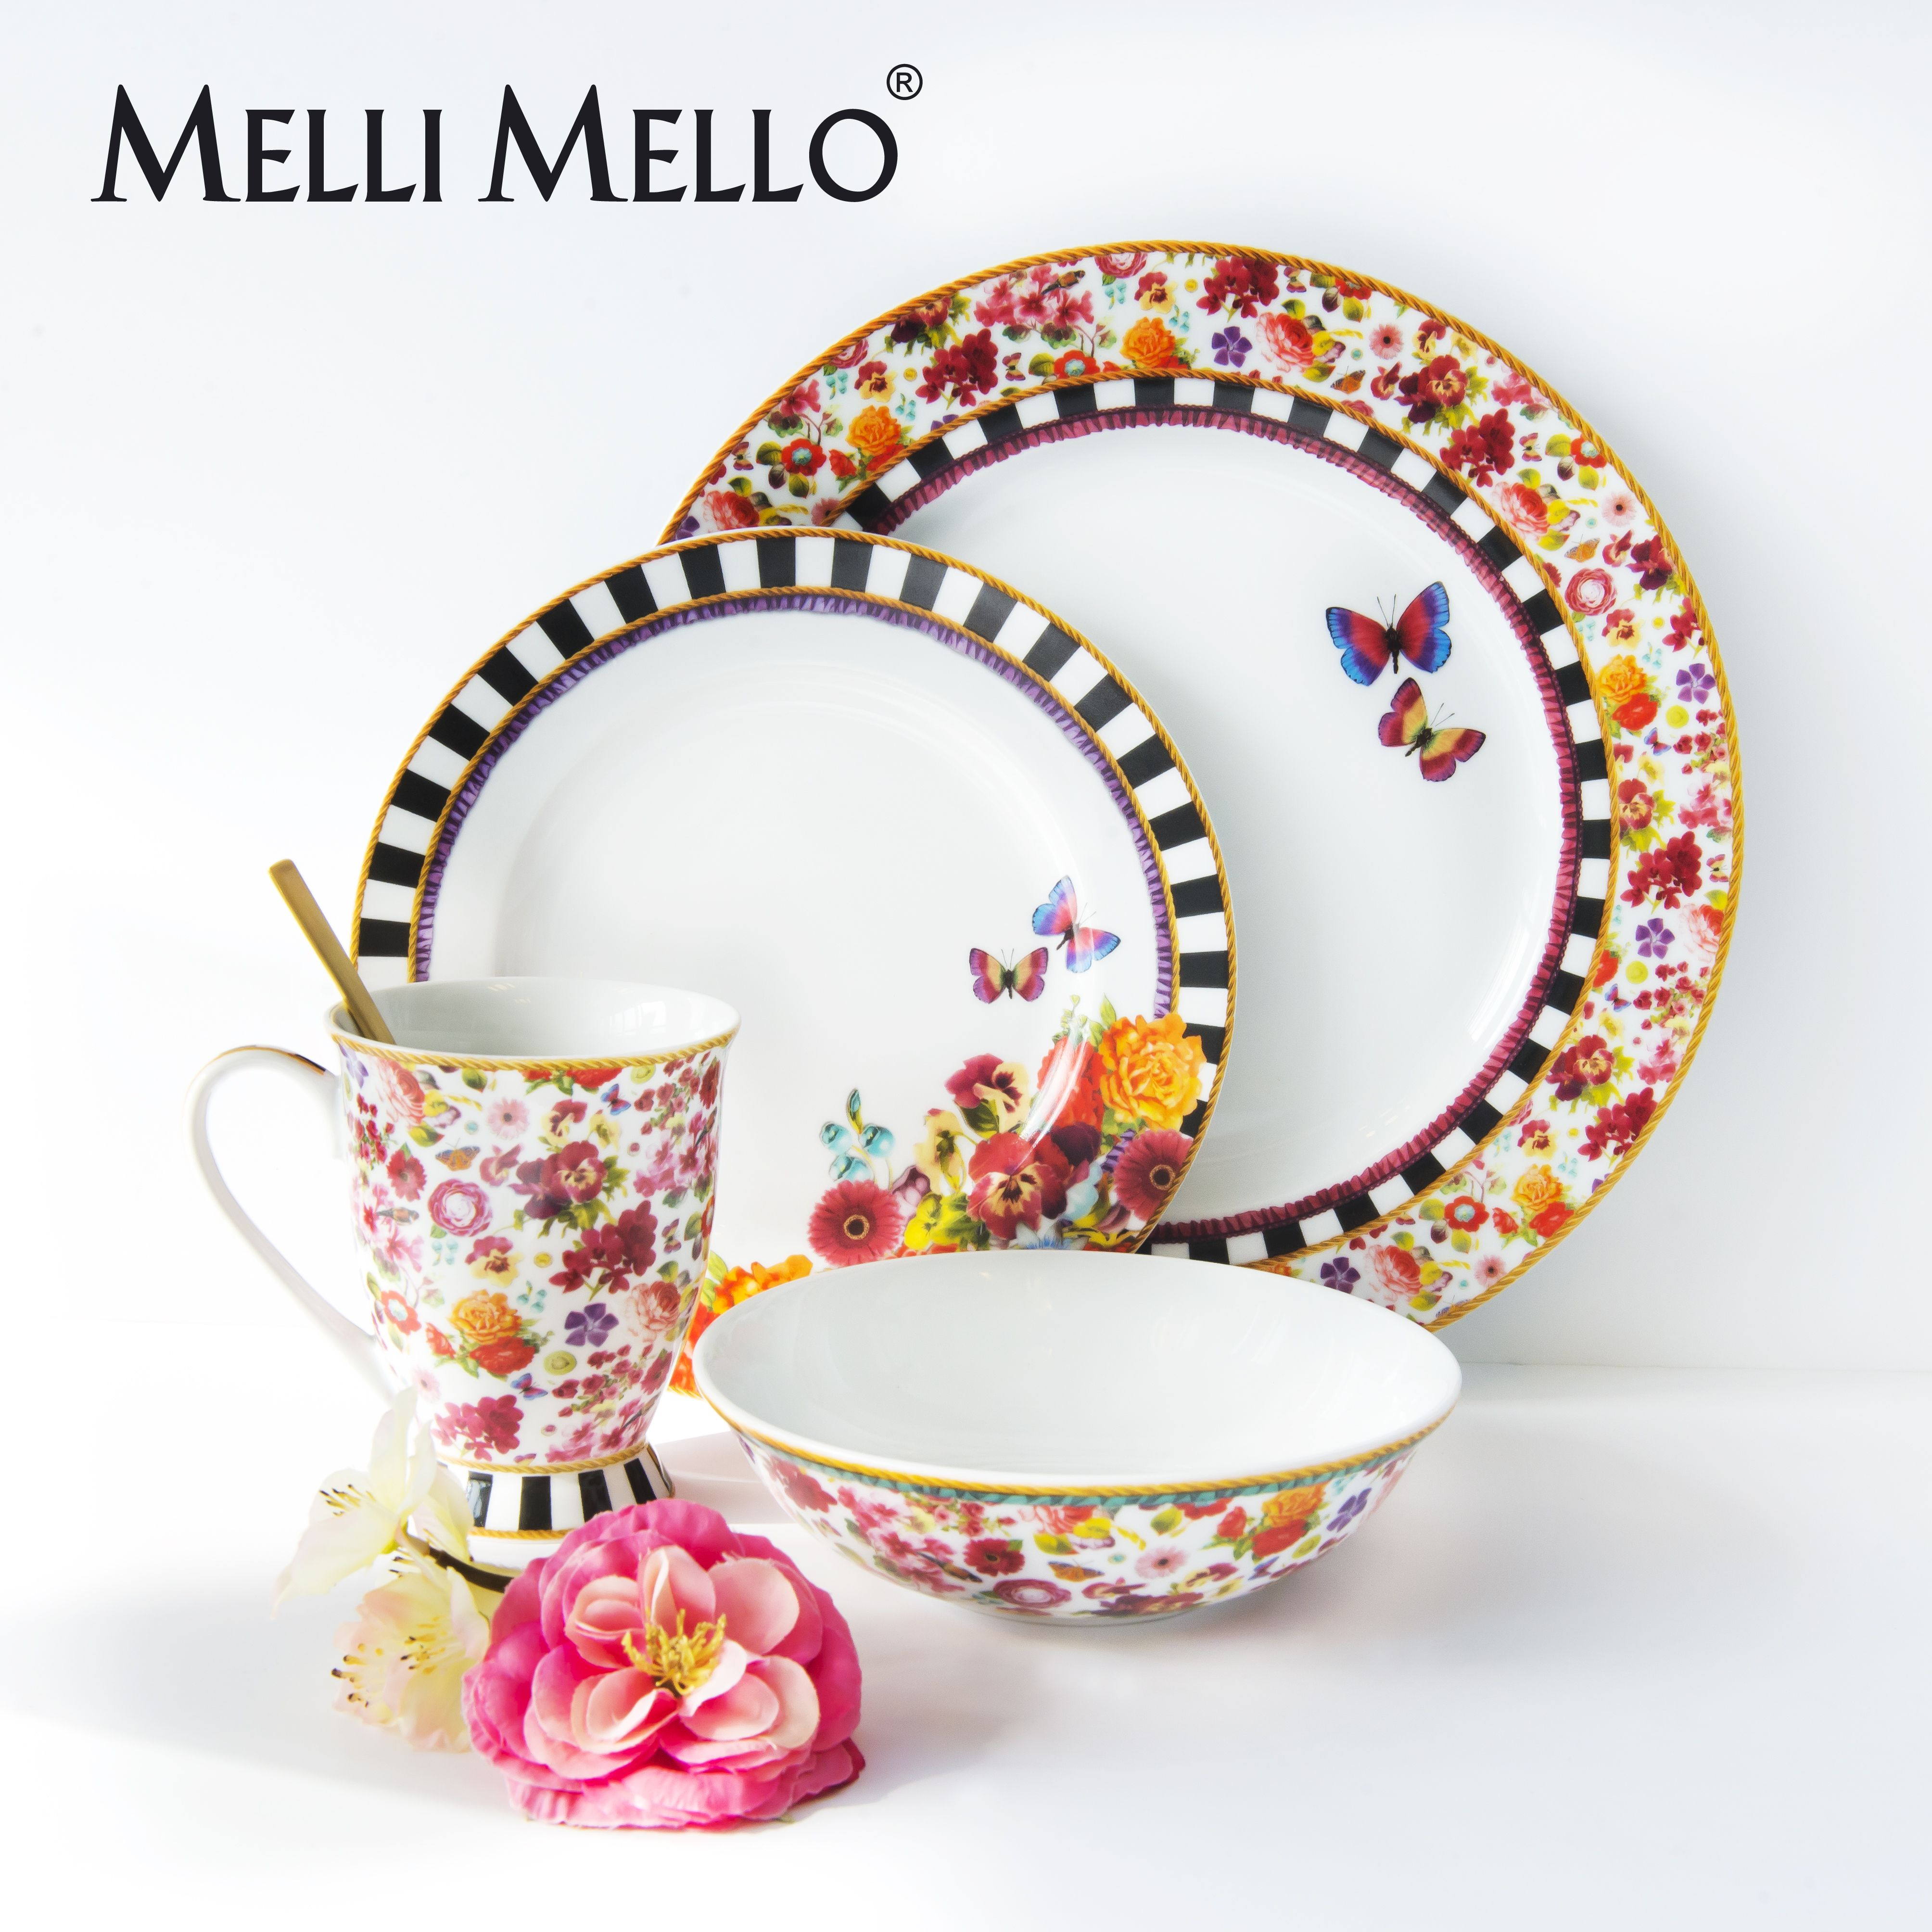 lenox dinnerware melli mello isabelle floral u0026 eliza stripe porcelain collections available exclusively at - Lenox Dinnerware